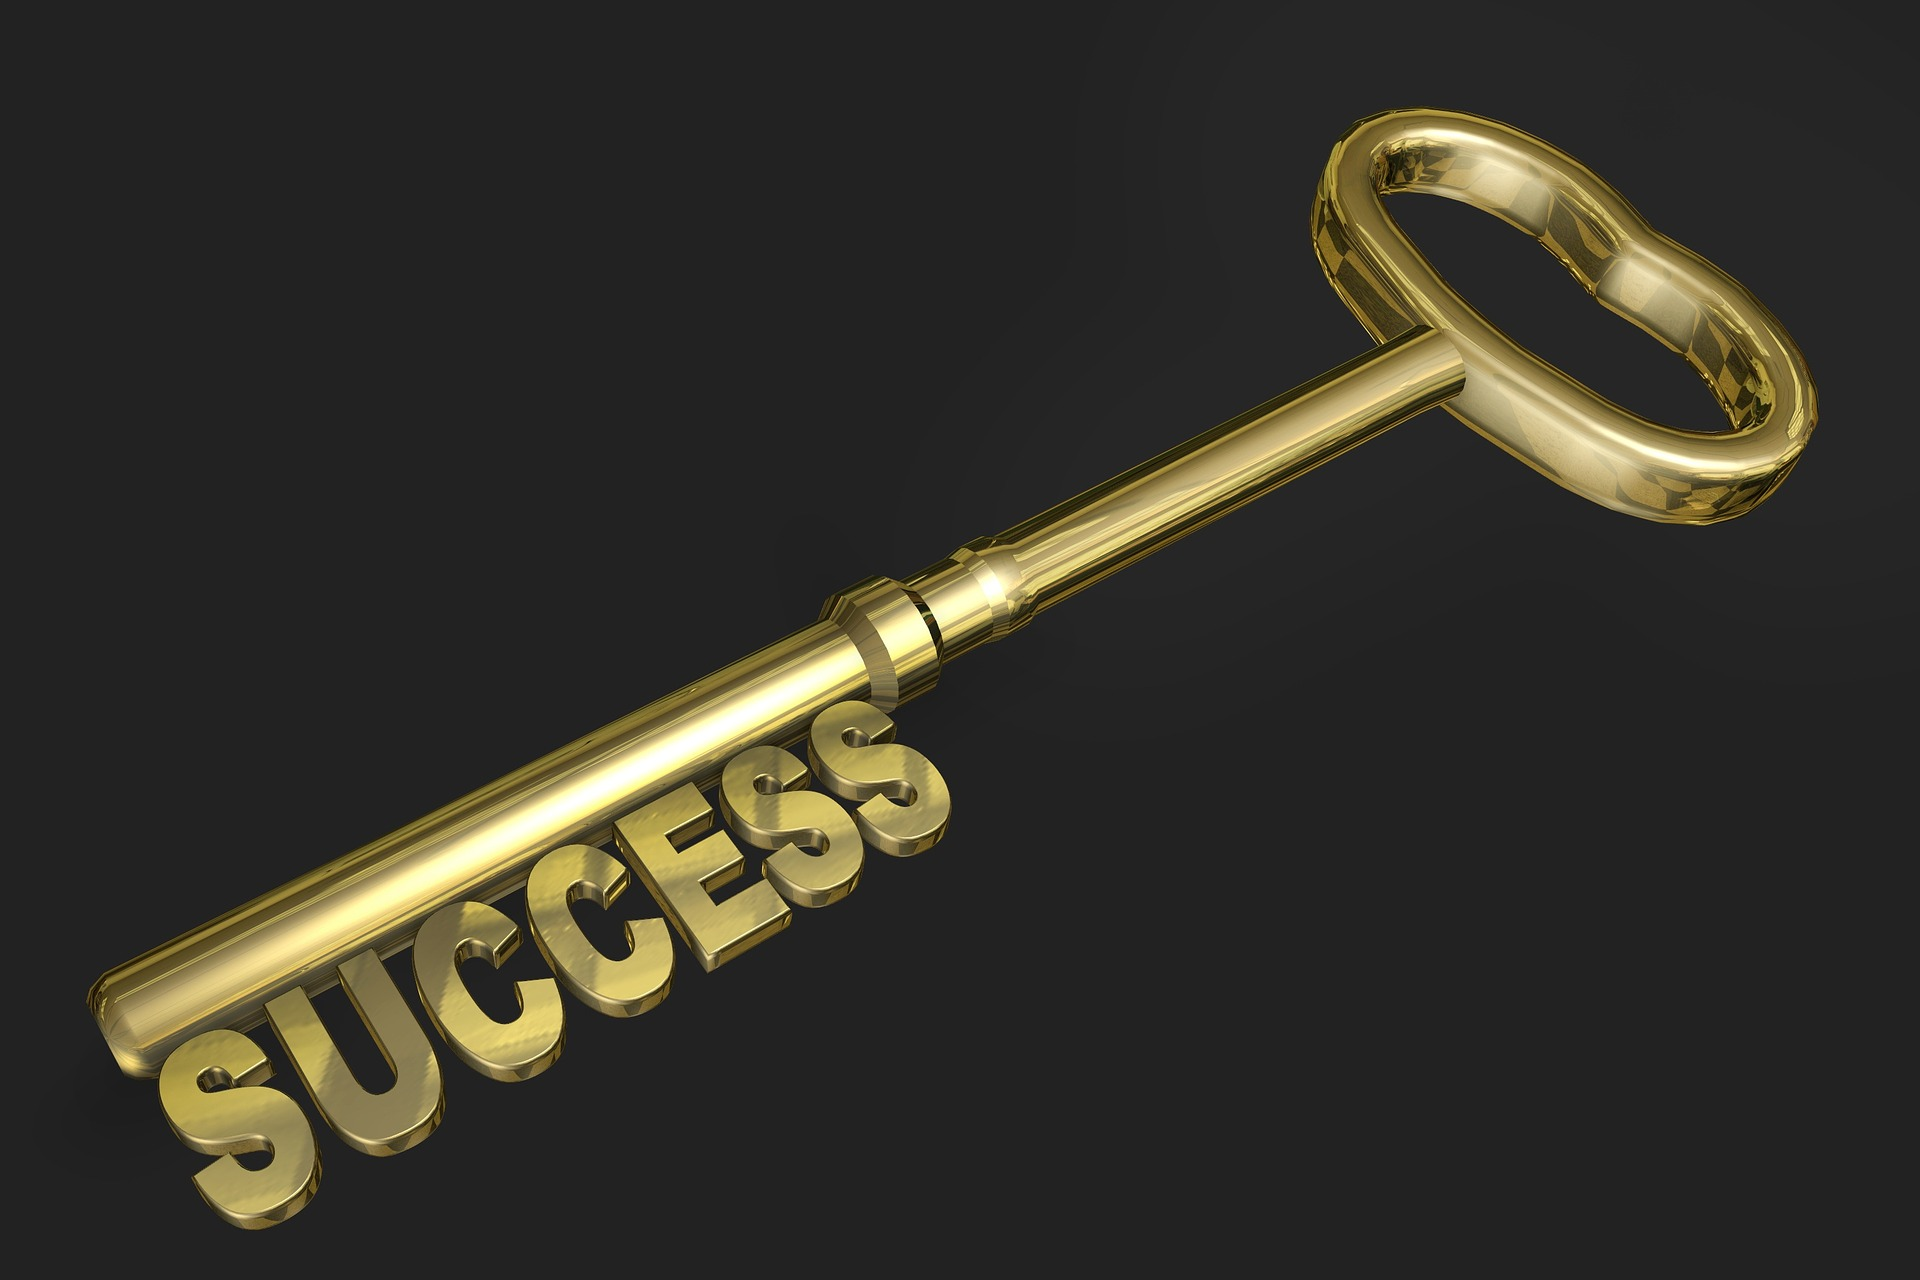 4 Keys for success